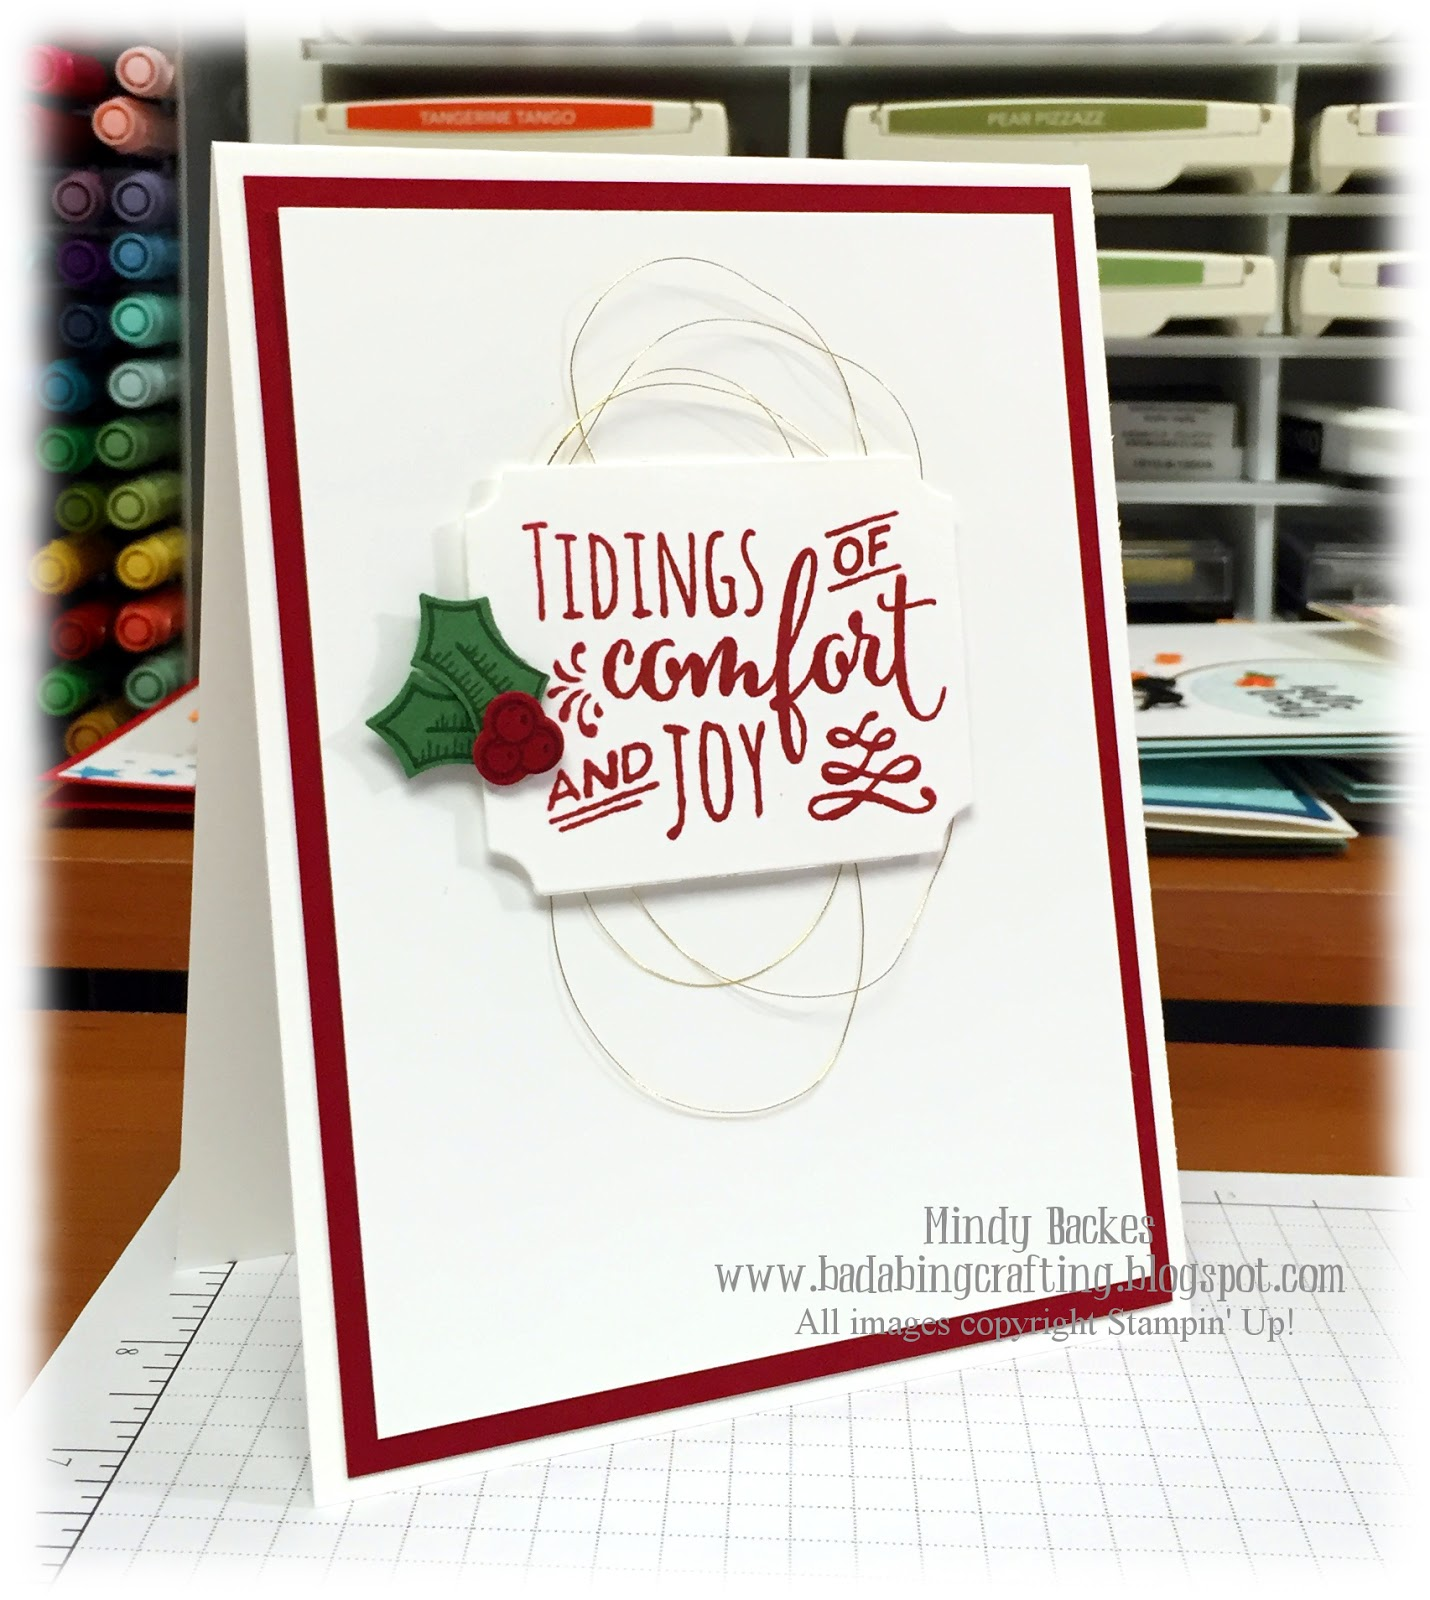 Christmas In August Poster.Bada Bing Paper Crafting Christmas In August